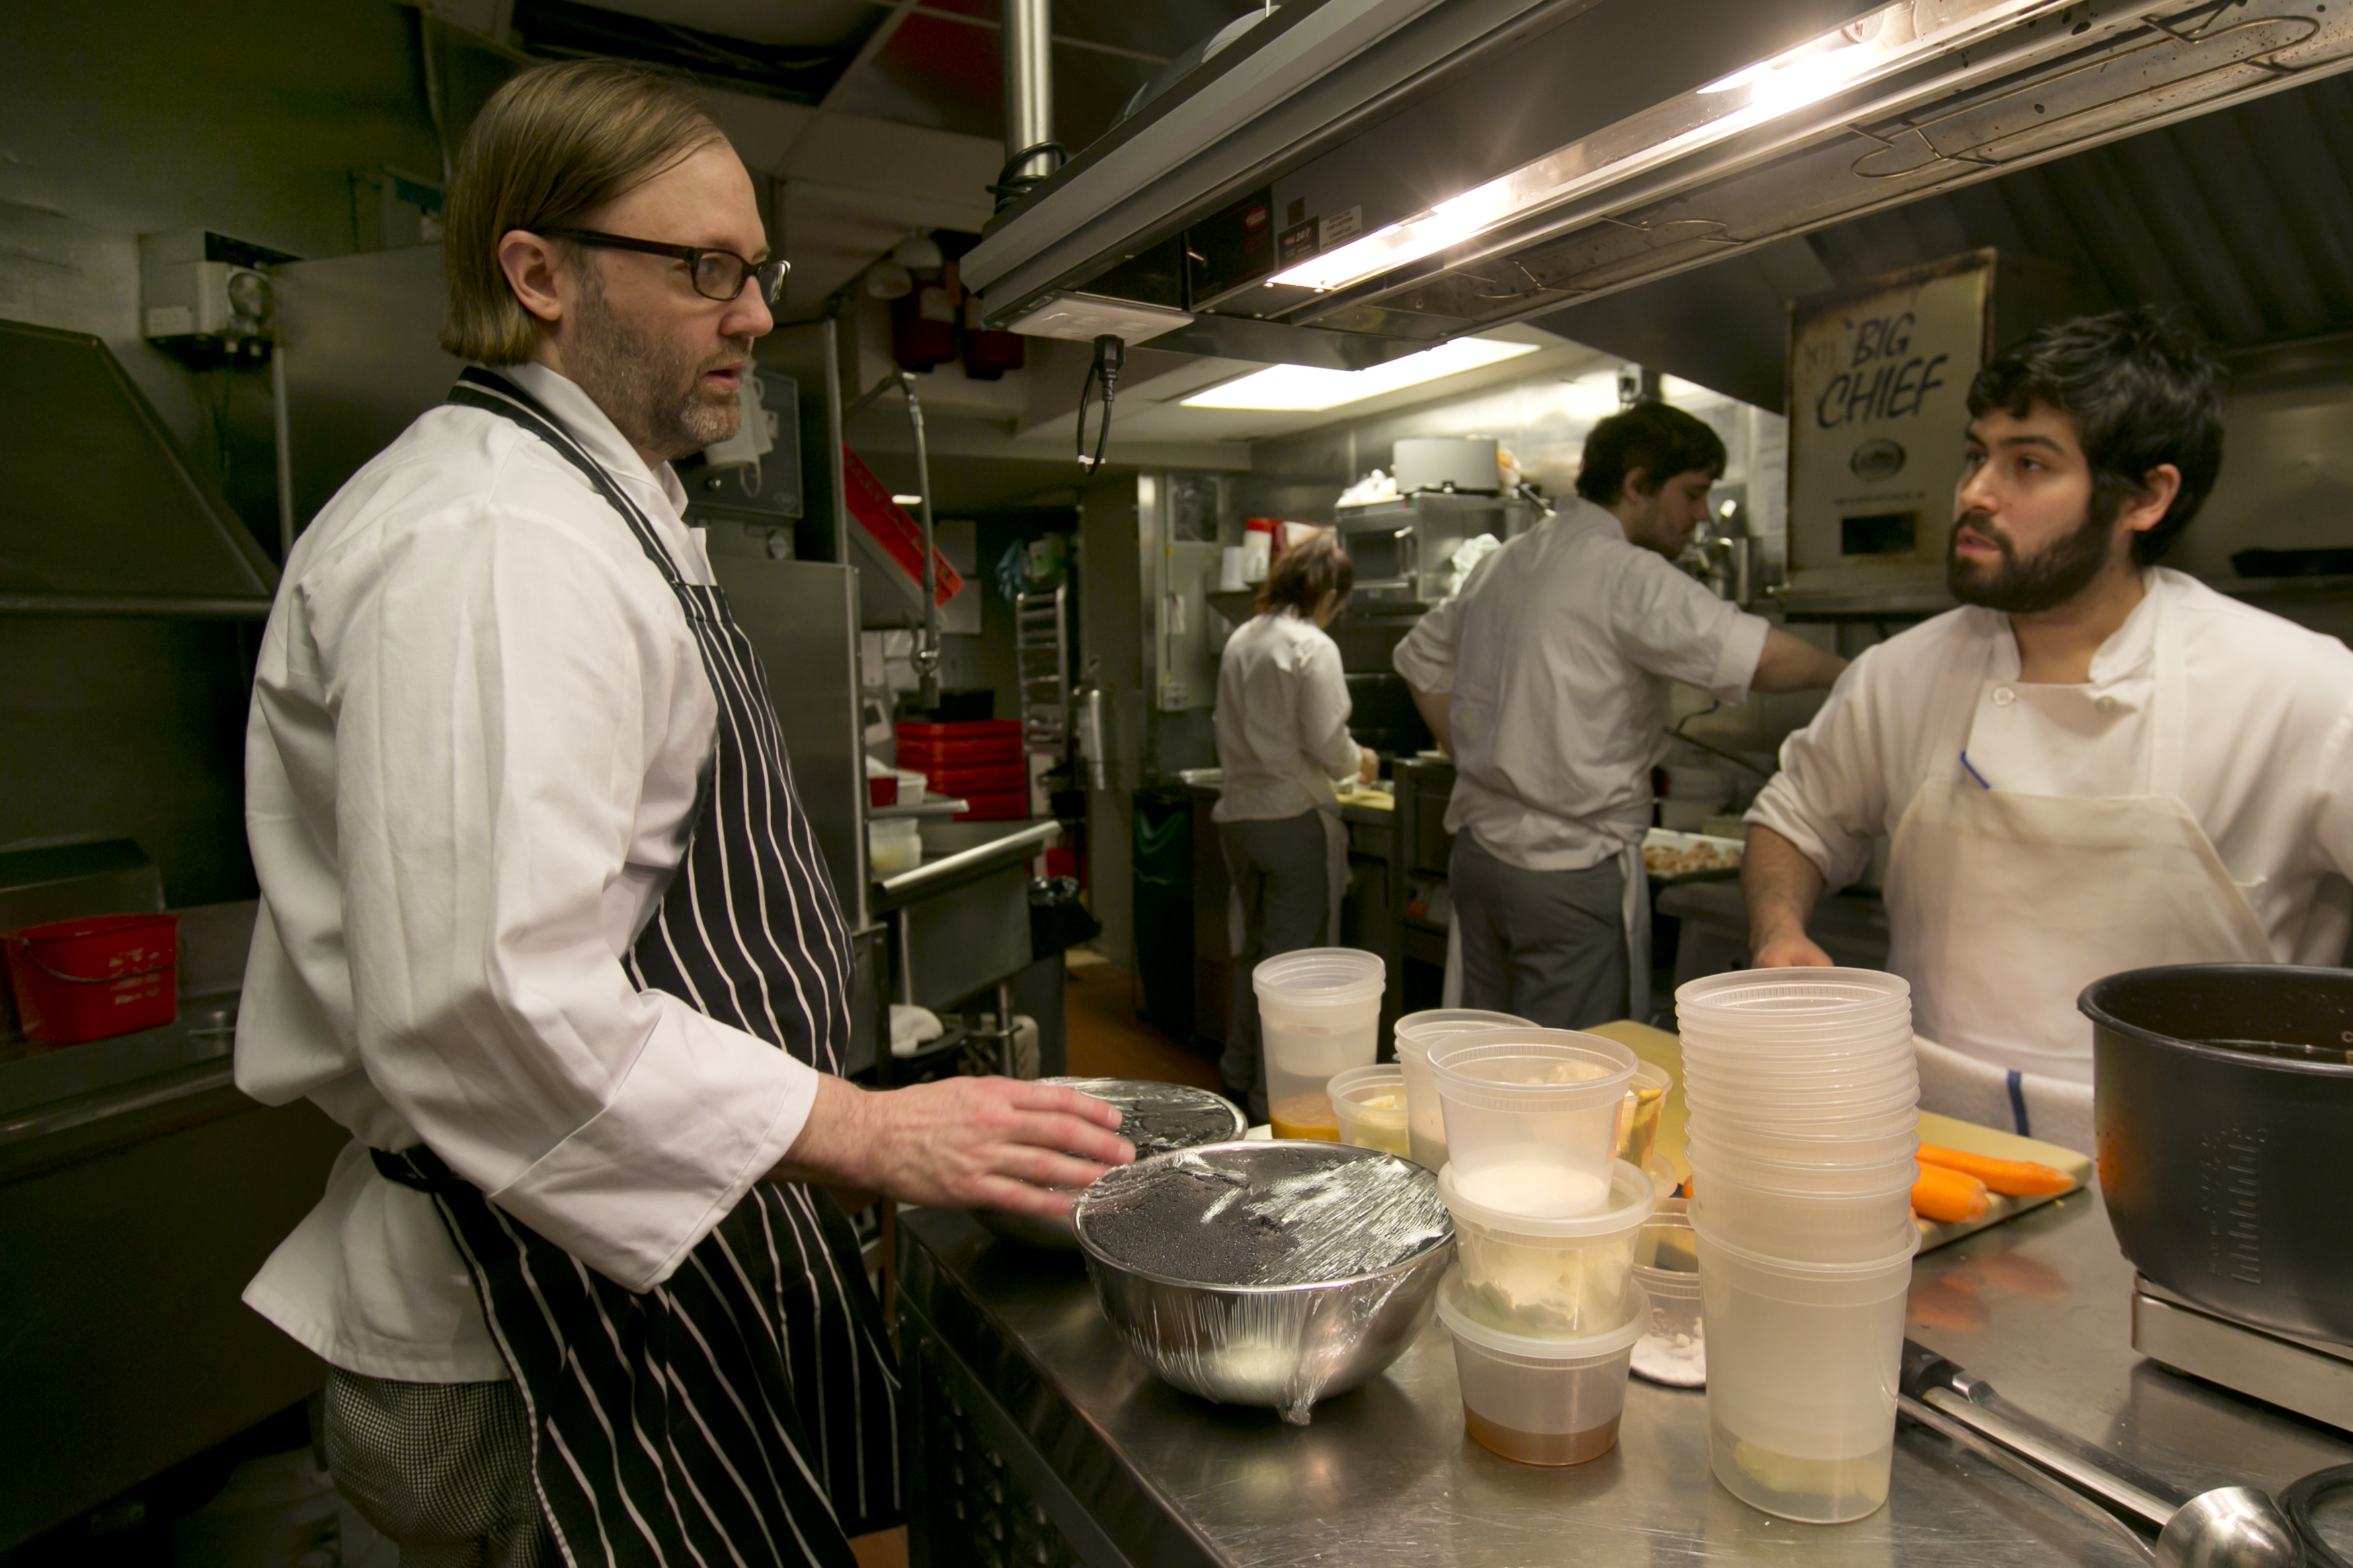 Chef Wylie Dufresne (L) talks with a member of his kitchen staff at Alder. (AP Photo/Richard Drew)